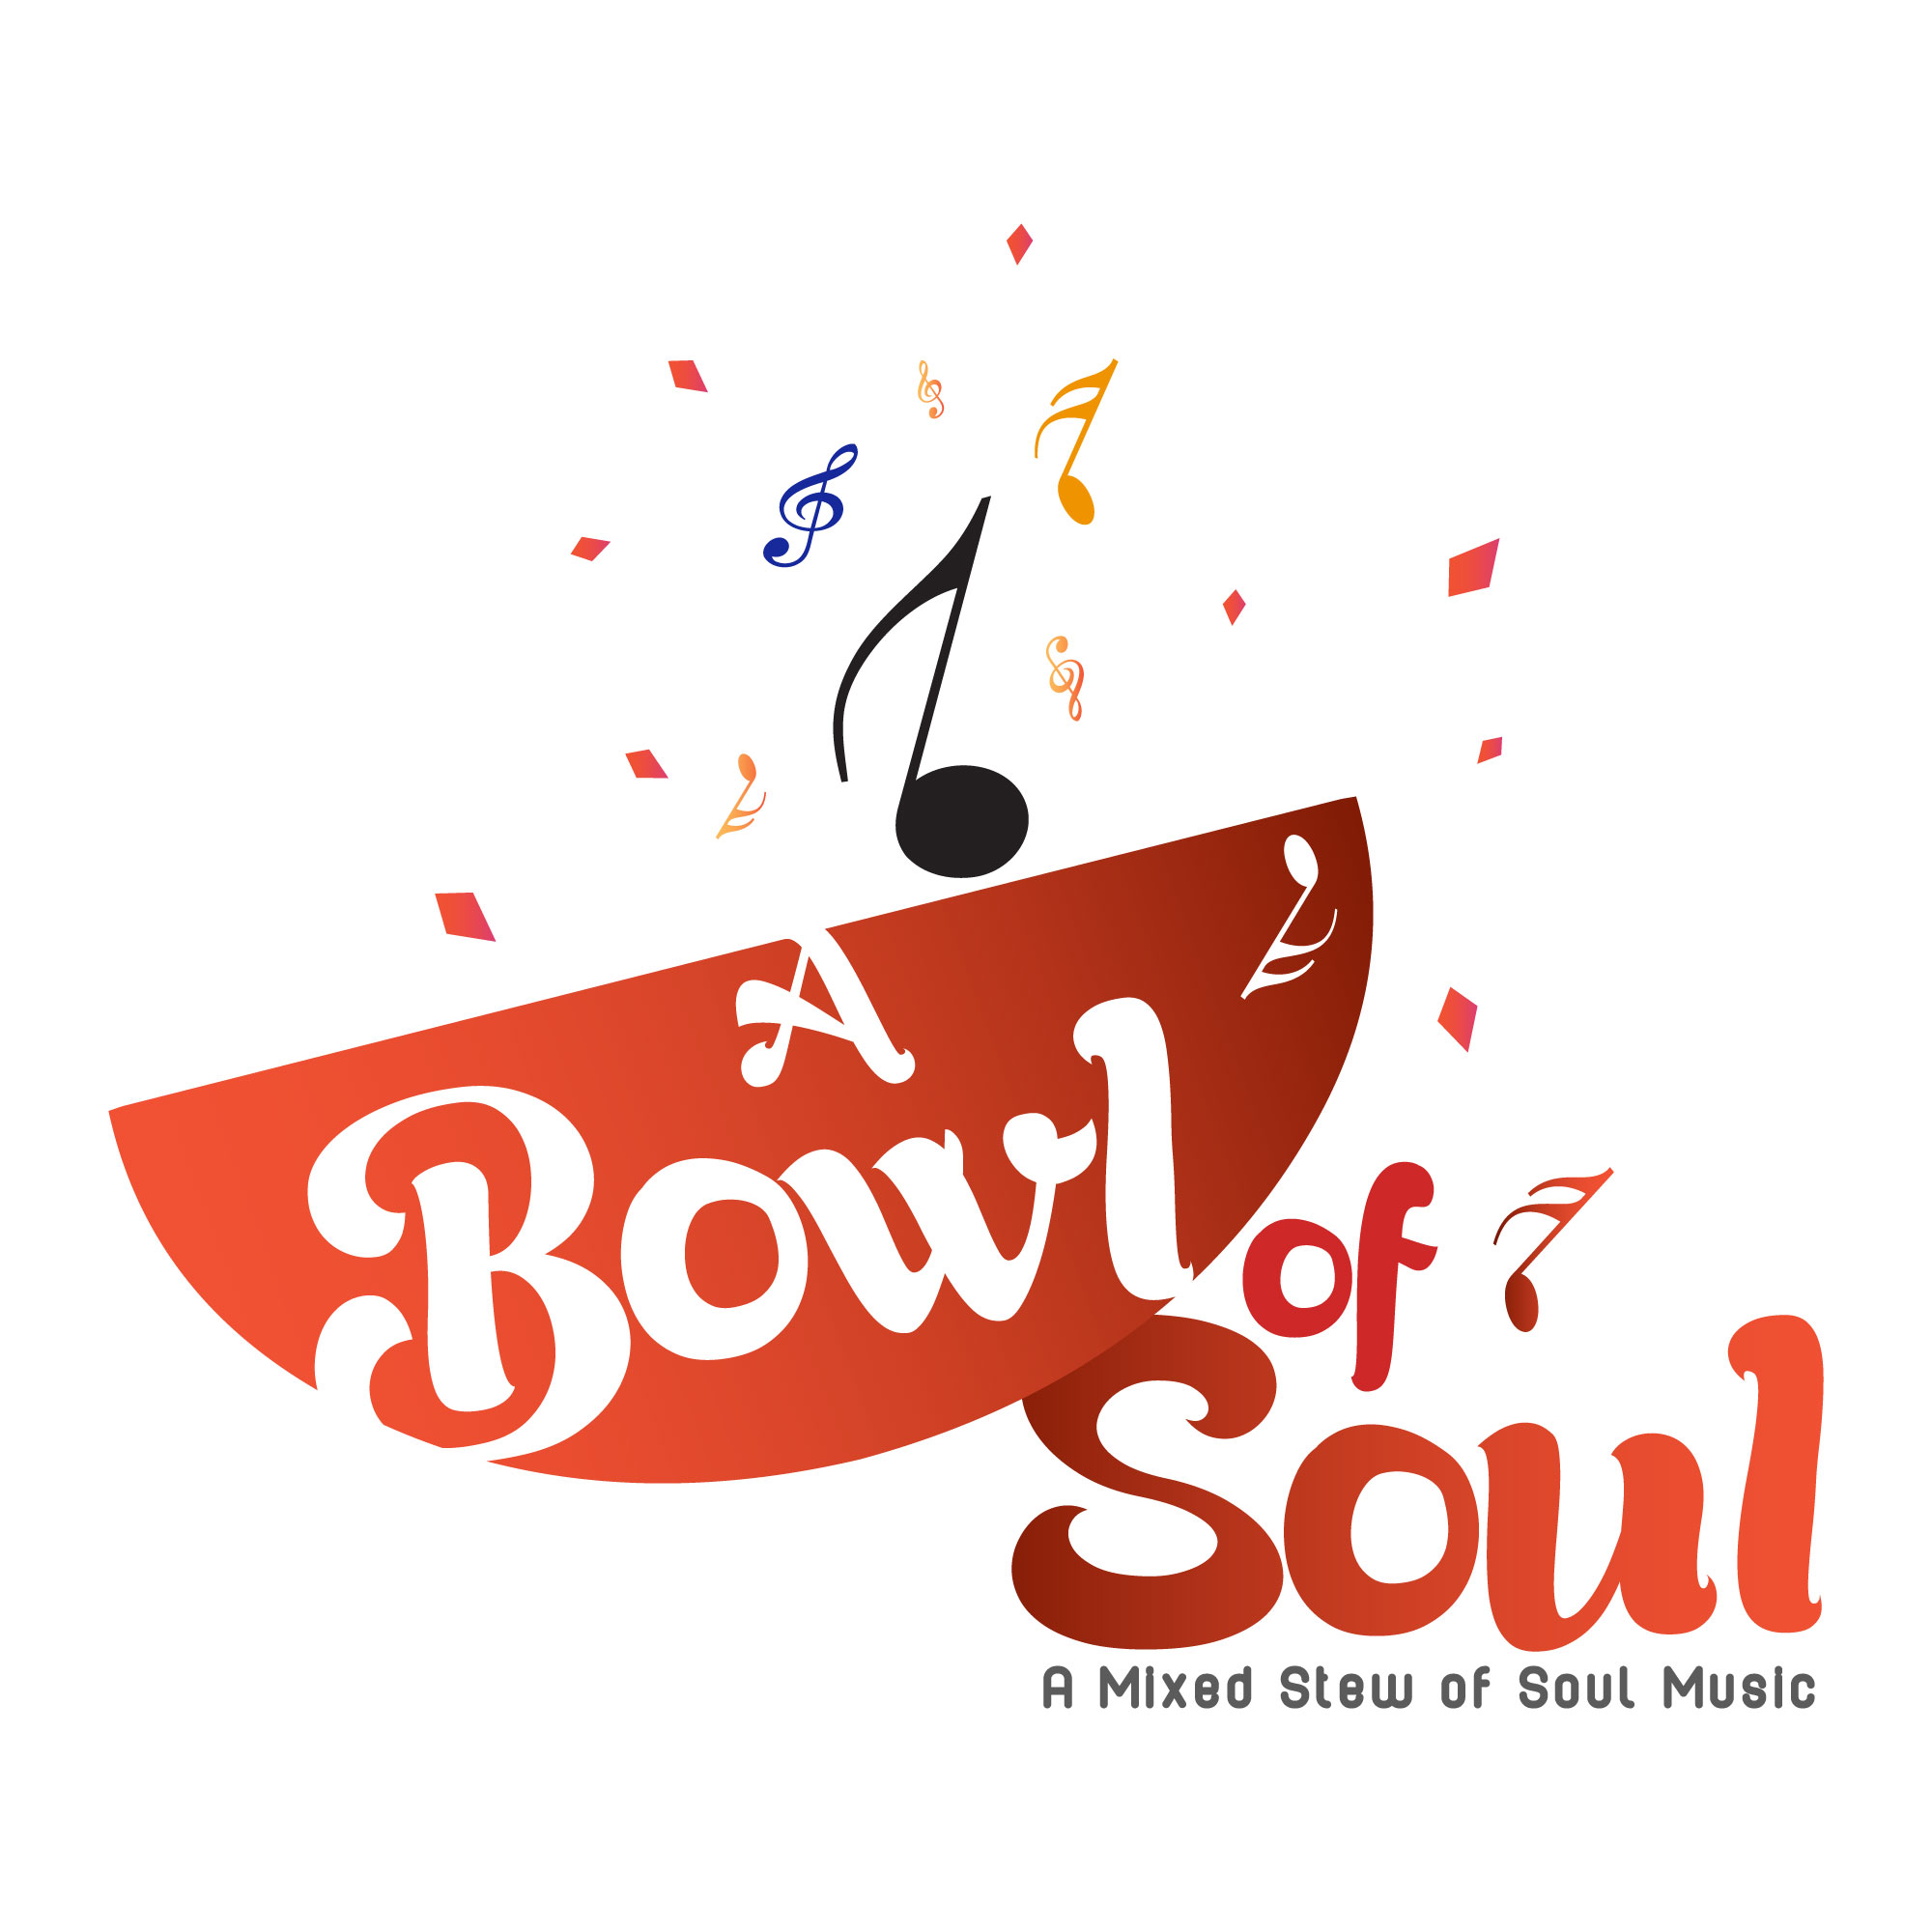 A Bowl of Soul A Mixed Stew of Soul Music Broadcast - 03-19-2021 - Continuation of The Ladies of R&B. March is Women's History Month show art